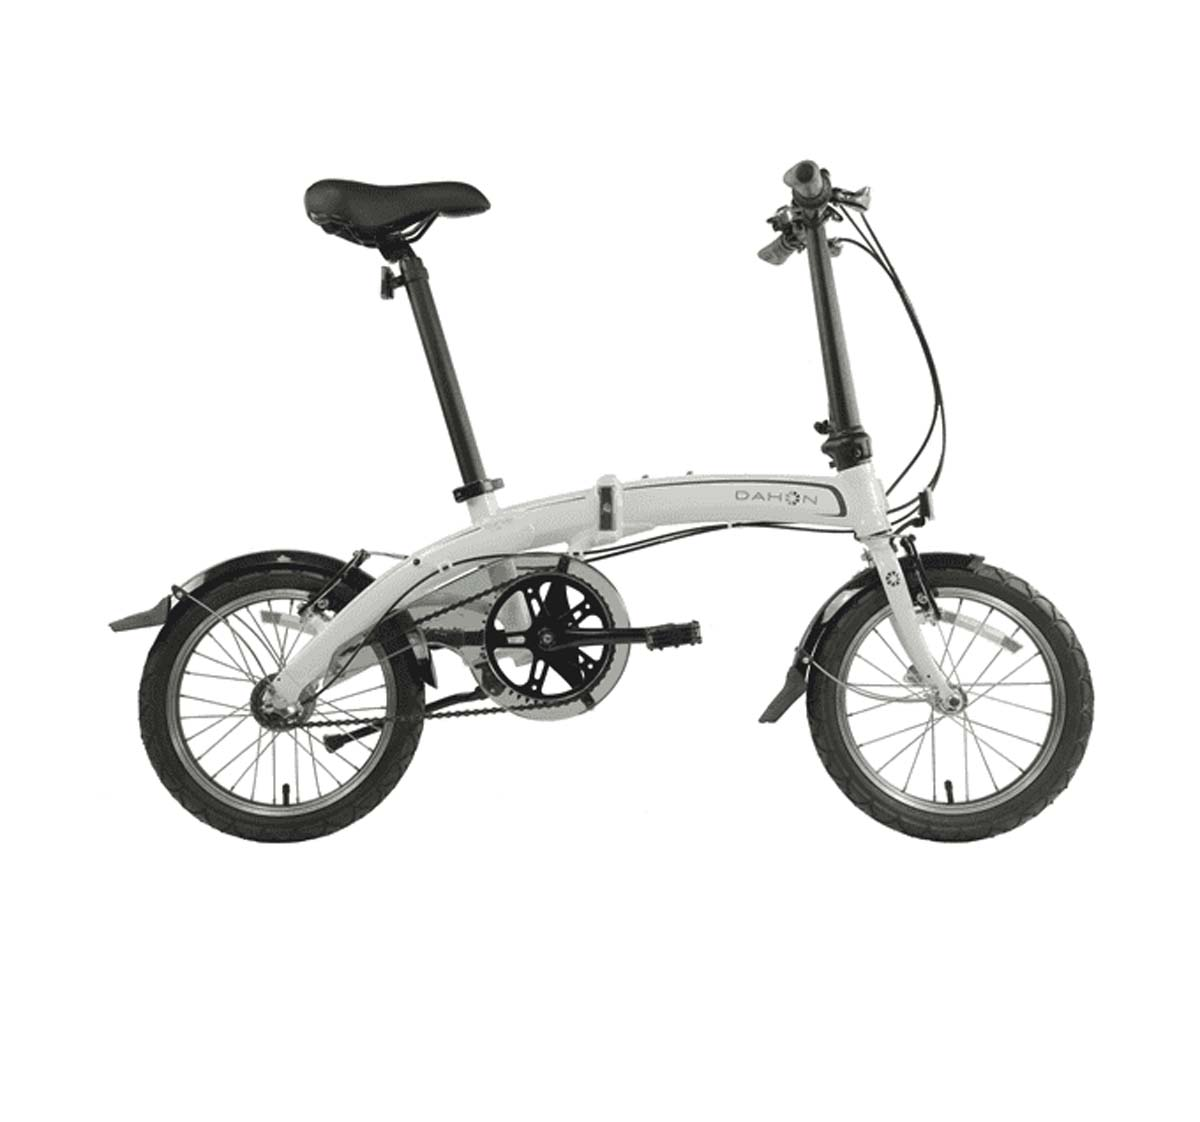 "Dahon Curve I3 2019 White 16"" 3 Speed Folding Bike Bicycle"